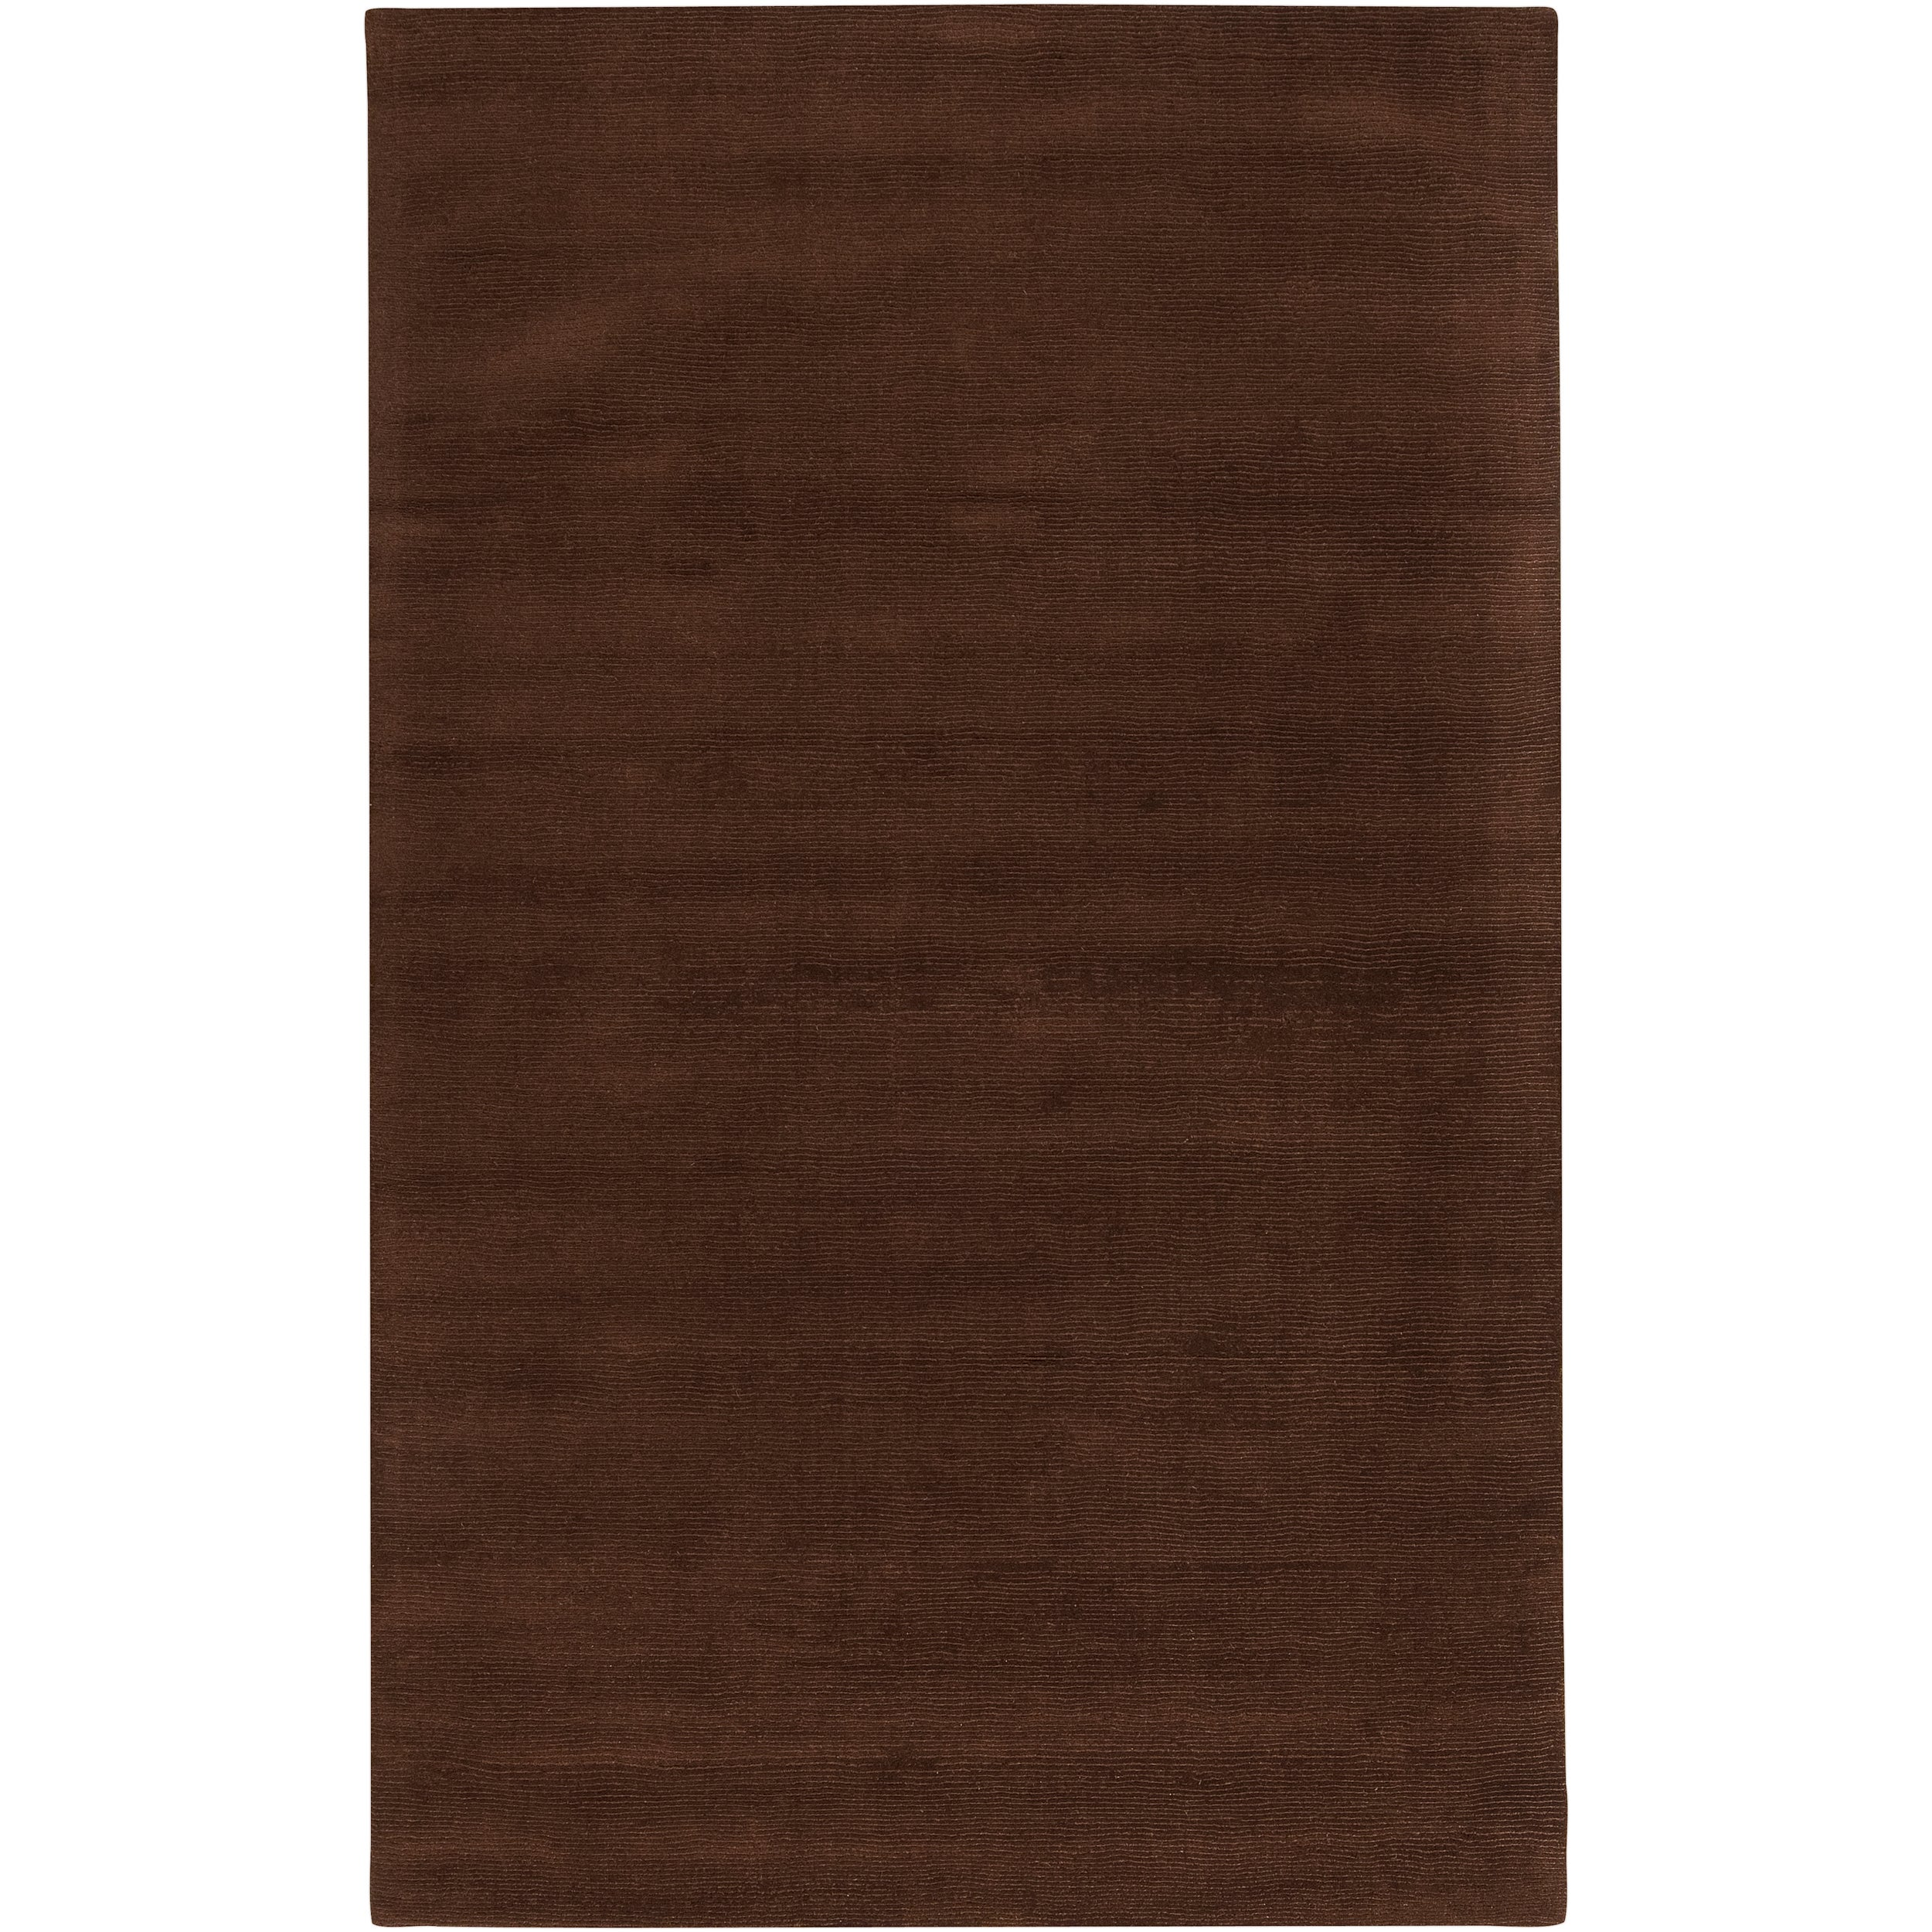 Hand-crafted Brown Solid Casual Nivia Wool Area Rug - 3'3 x 5'3